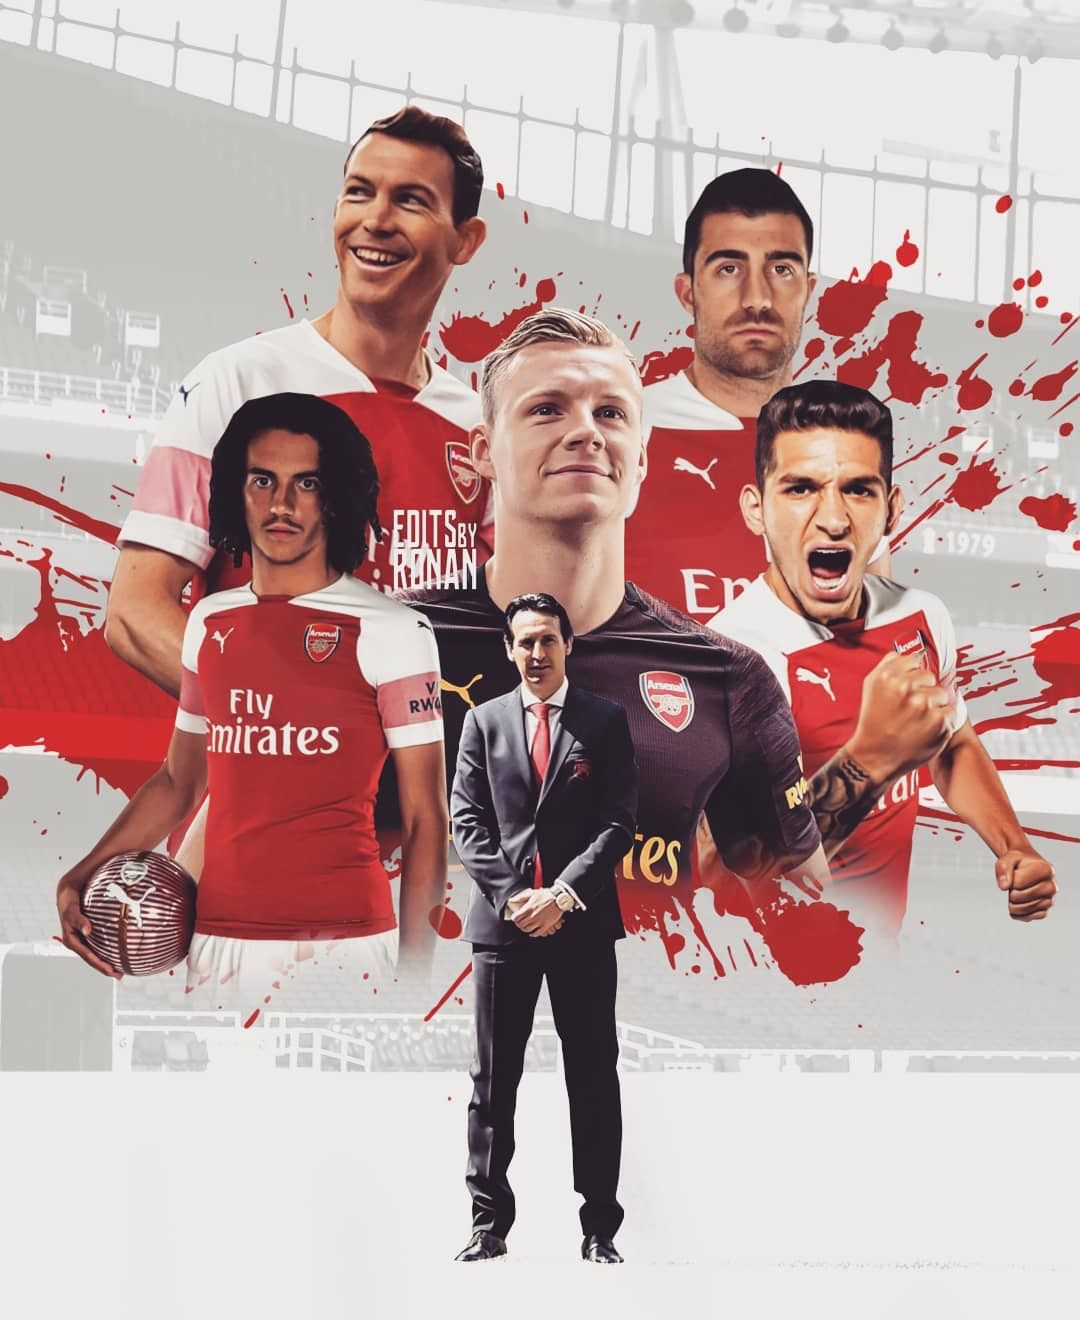 All The New Signings For Arsenal 2018 Credit To At Editsbyronan On